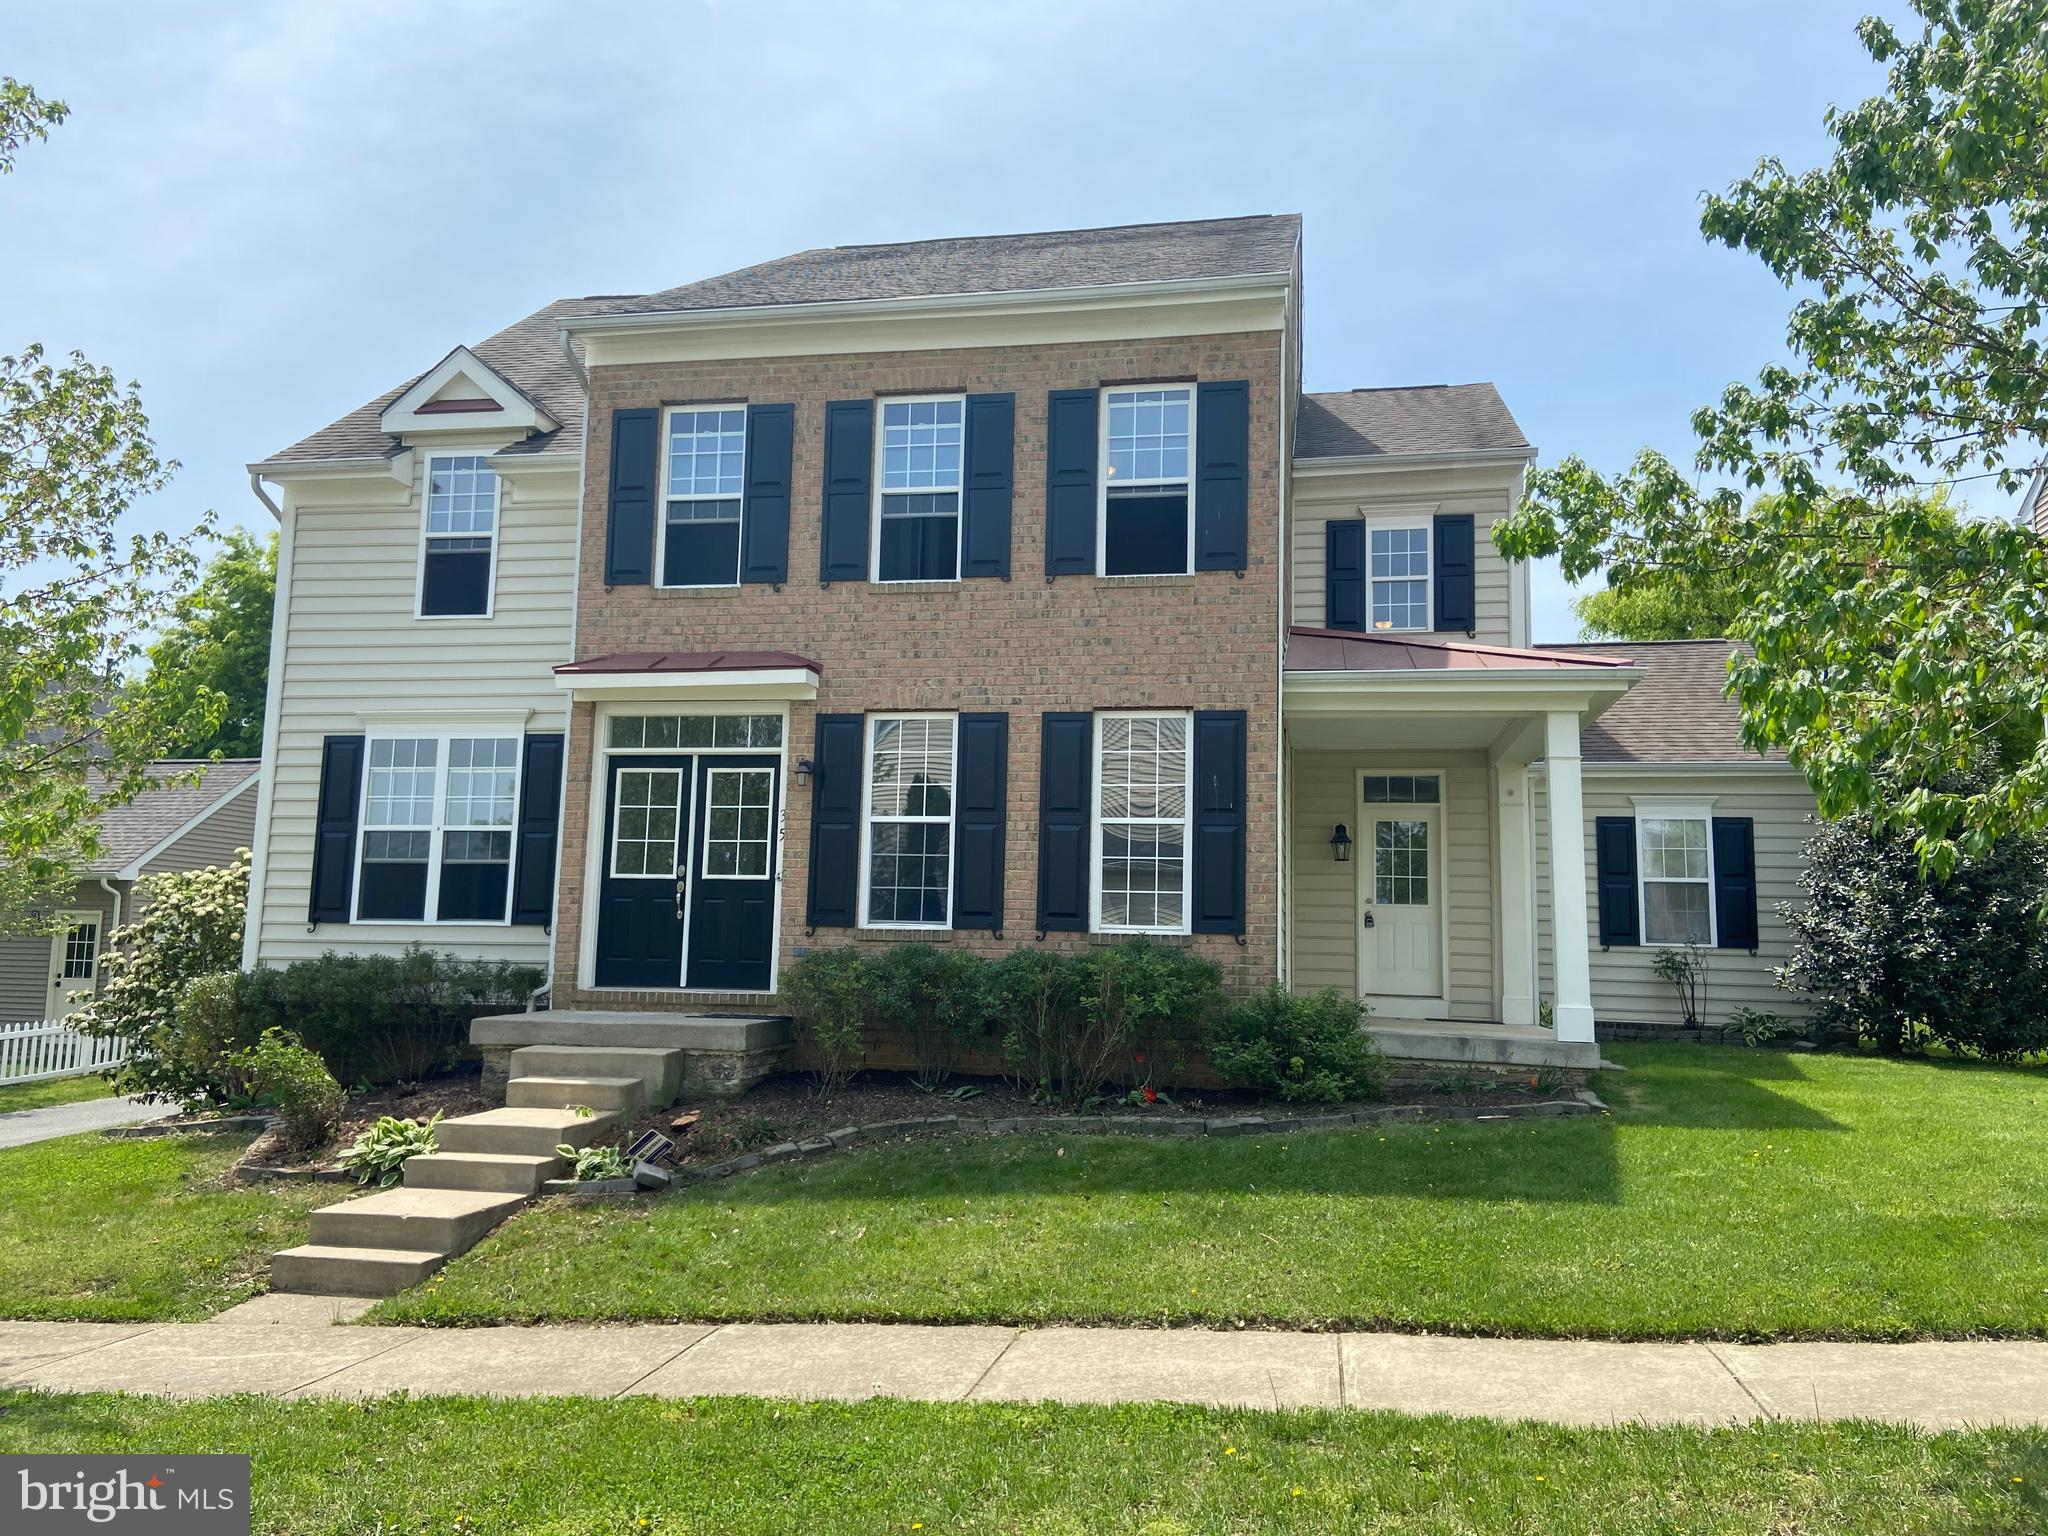 Absolutely Gorgeous 5 Bedroom 3.5 Bath Colonial in very desirable Huntfield Subdivision in Charles T